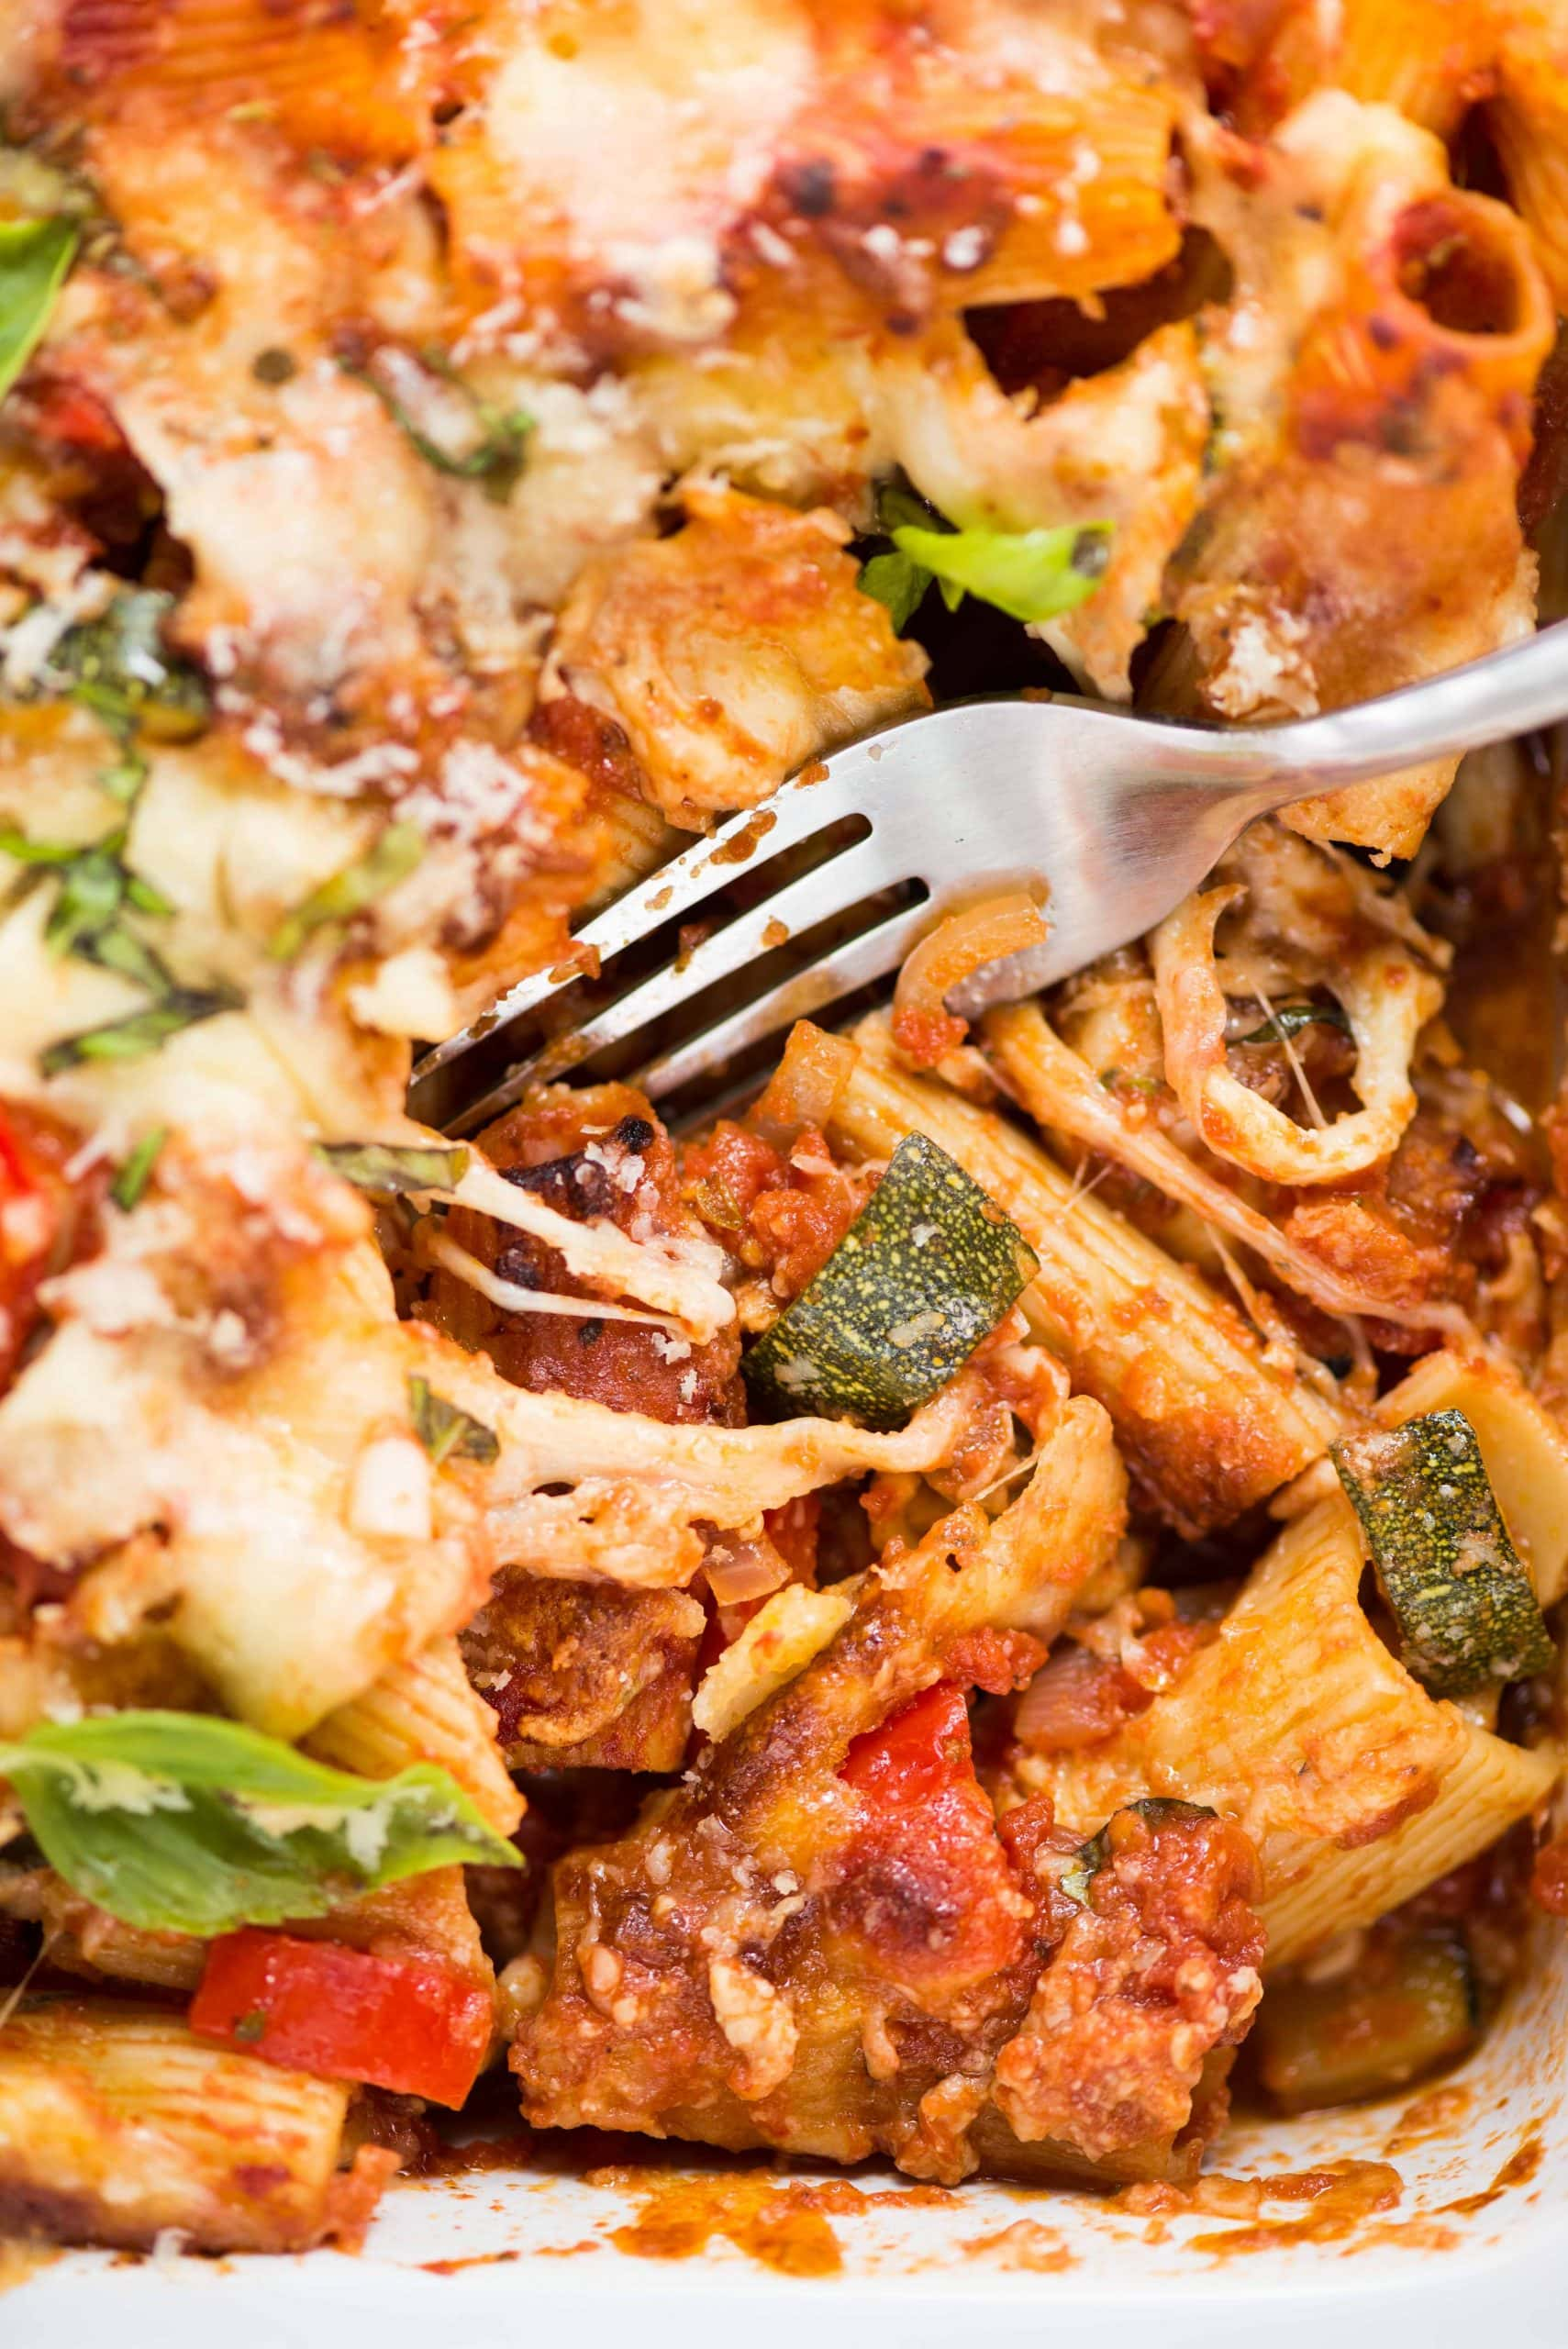 An Easy and delicious Vegetable Pasta dish that brings the goodness of vegetables and the flavours of cheese and garlic to pasta. This pasta bake recipe  is versatile and you can make with veggies and ingredients from the pantry.